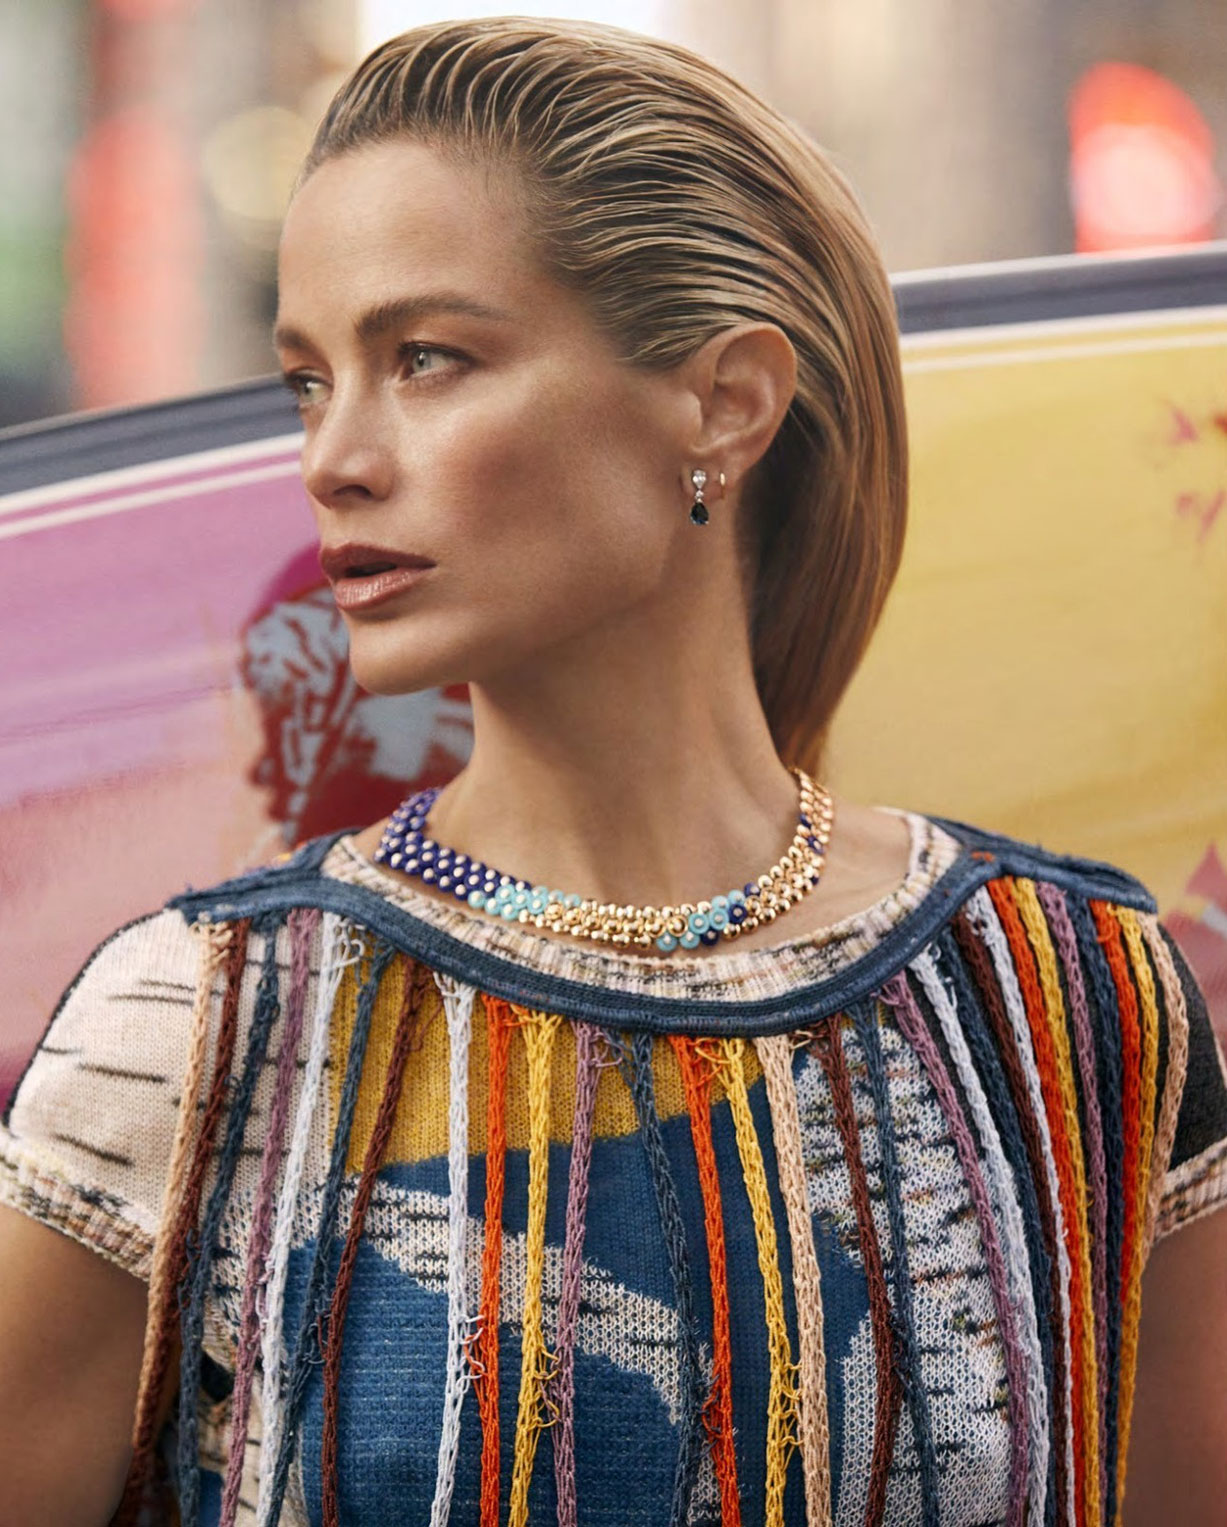 Surf City / Carolyn Murphy by Zoey Grossman / Harpers Bazaar US march 2019